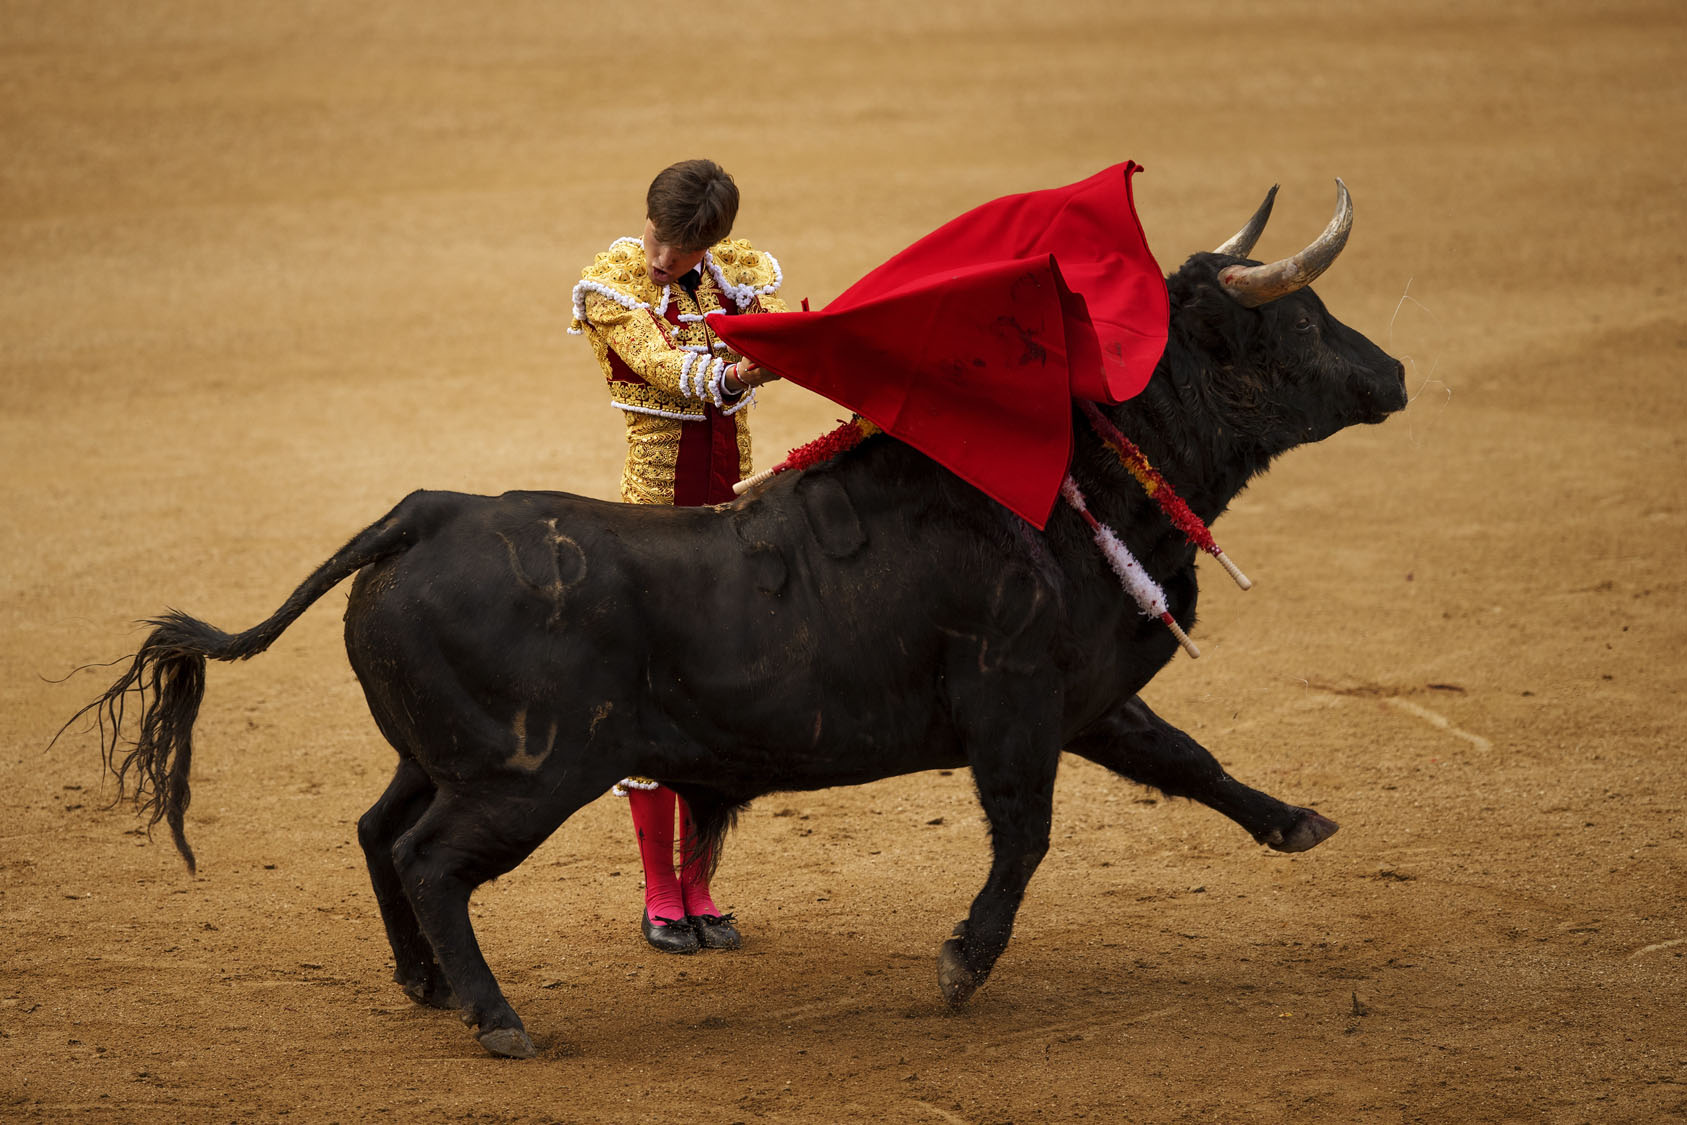 Bull fighting accidents